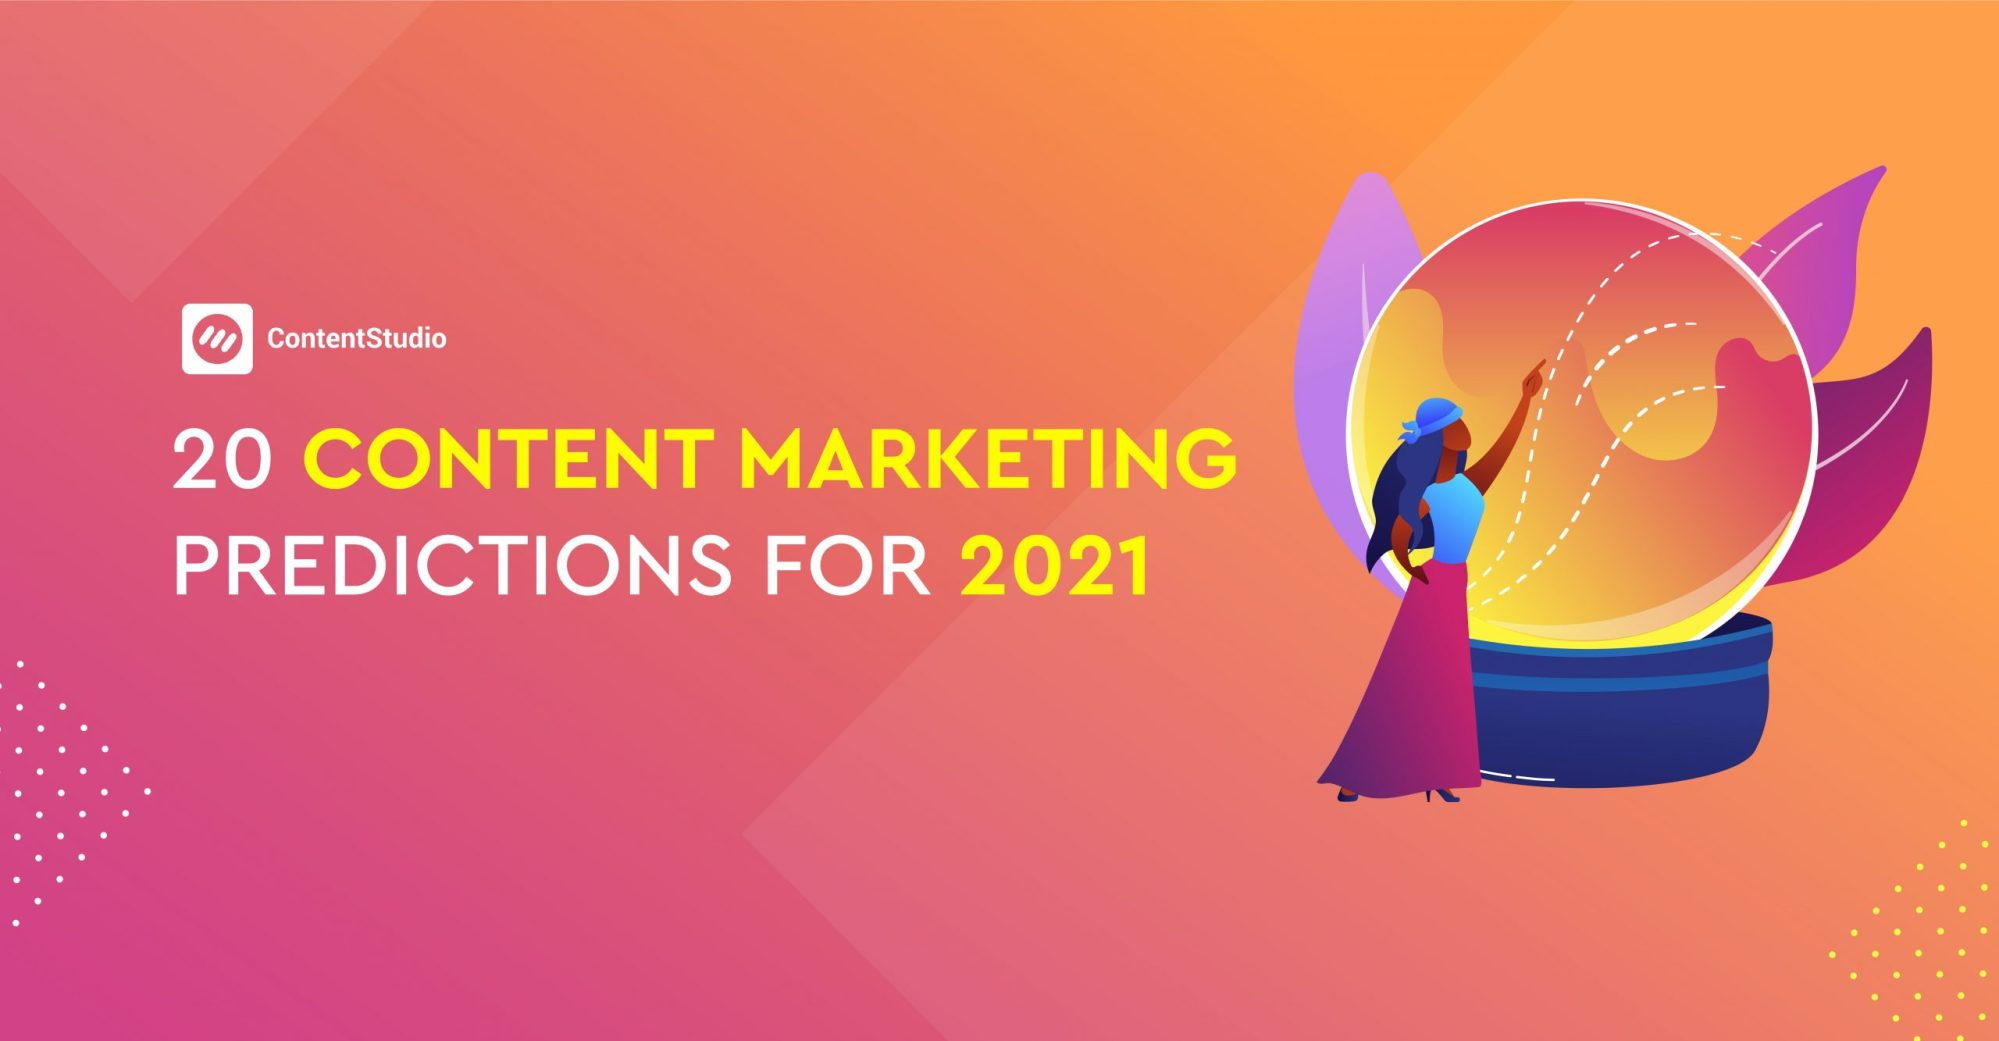 2021 content marketing predictions